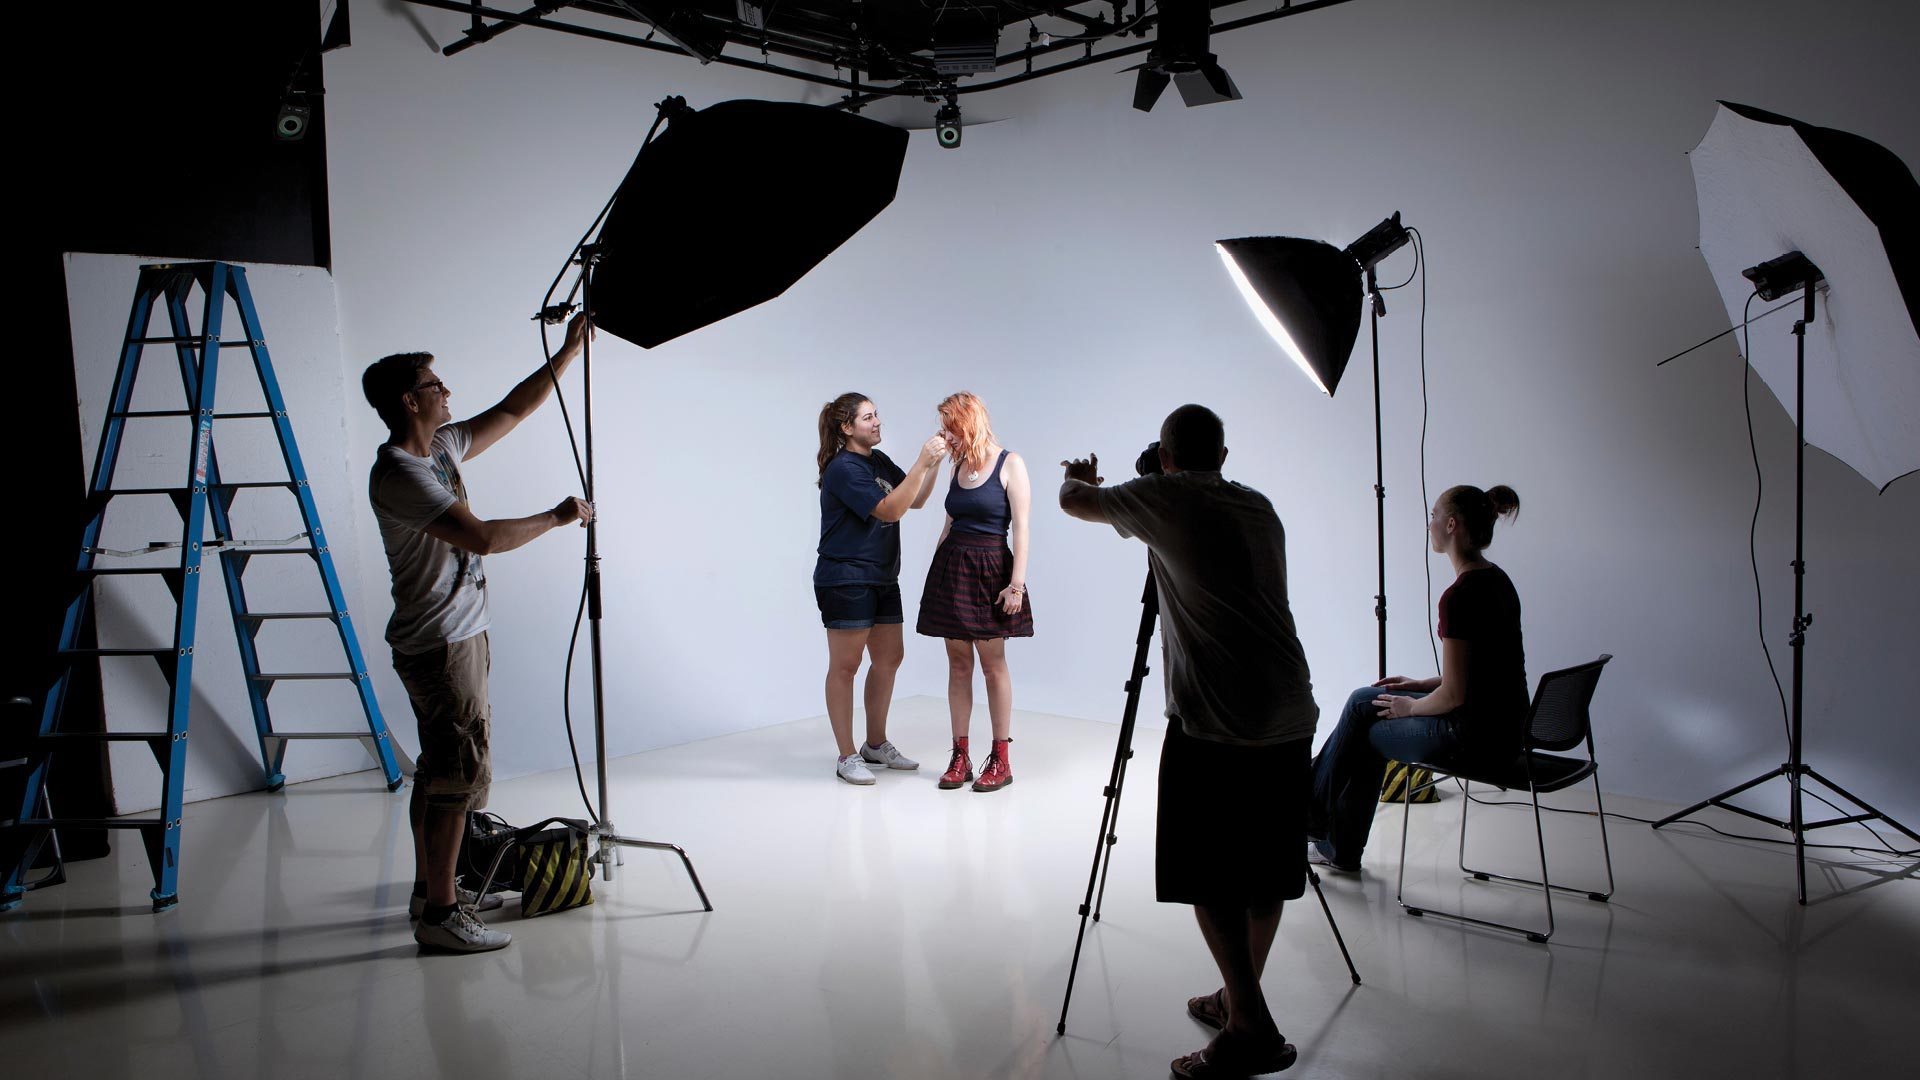 study photography at tafe queensland